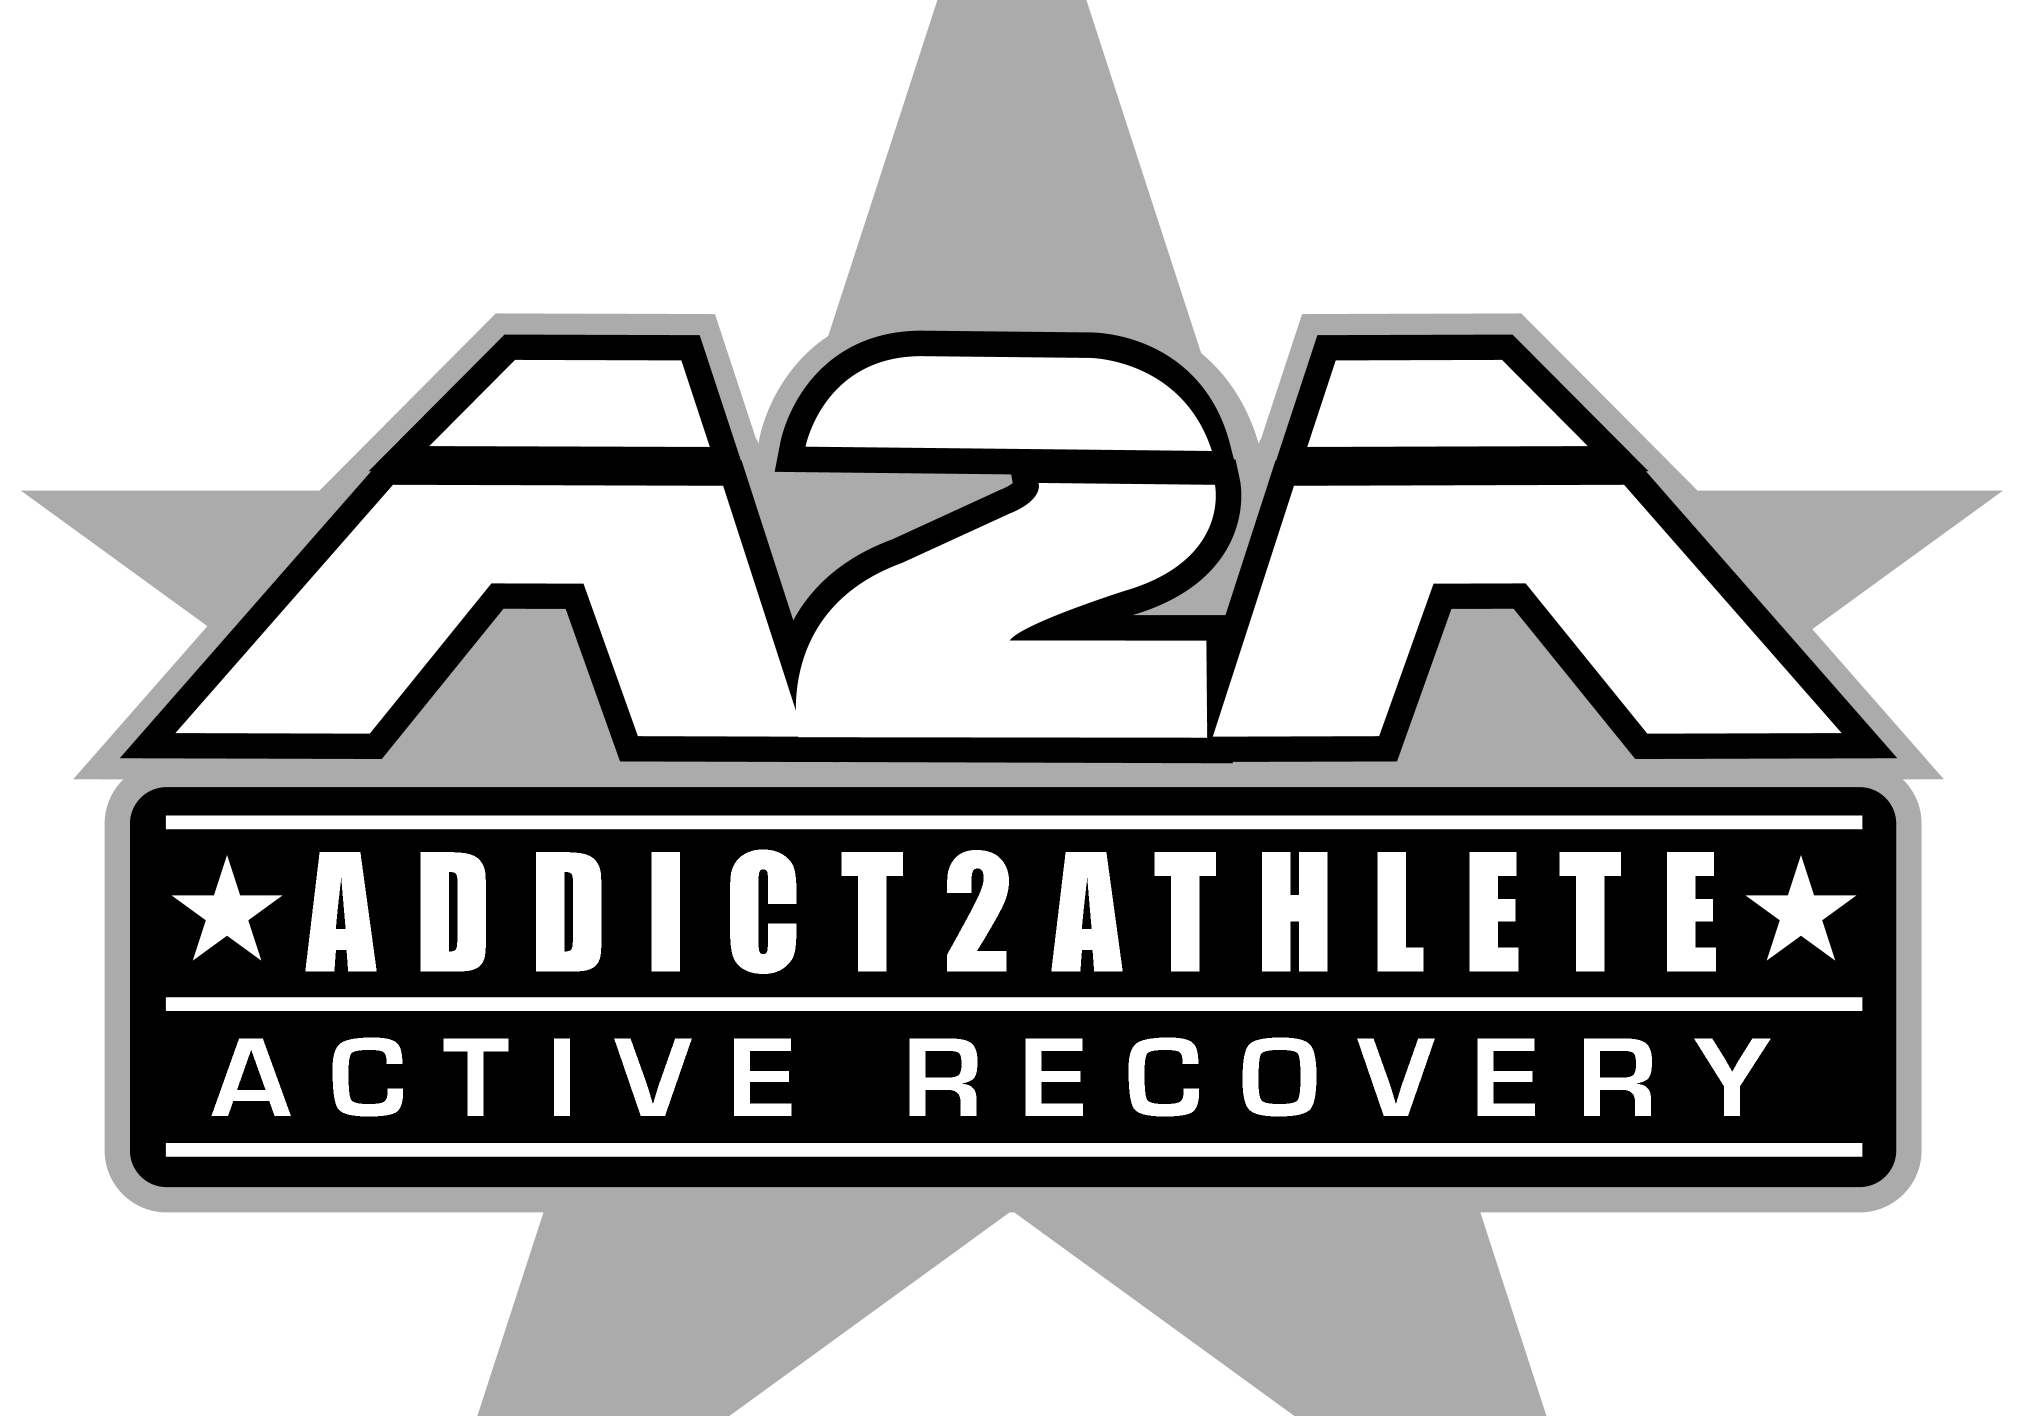 A2A Active Recovery 2018 blwht